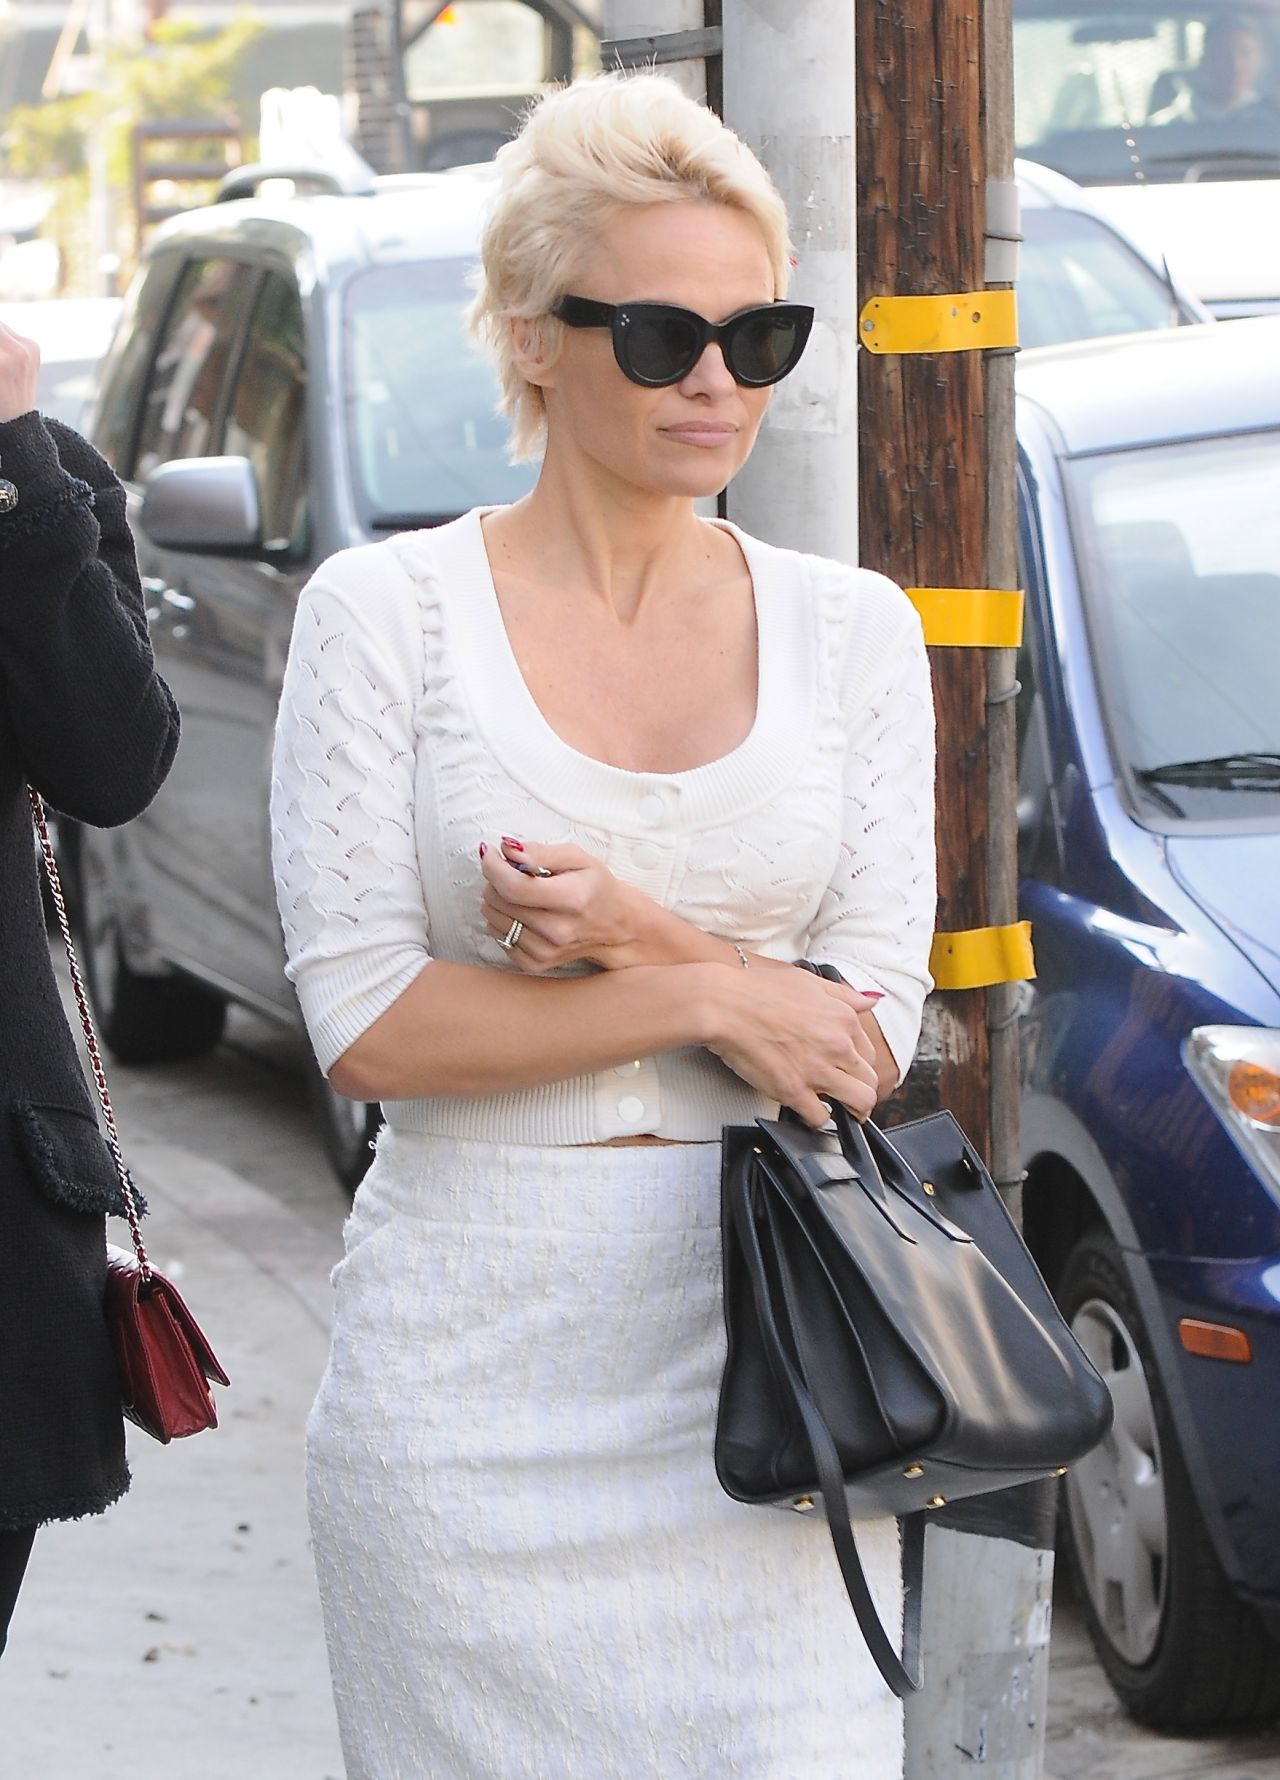 Pamela Anderson Street Style - Out in Los Angeles - January 2014